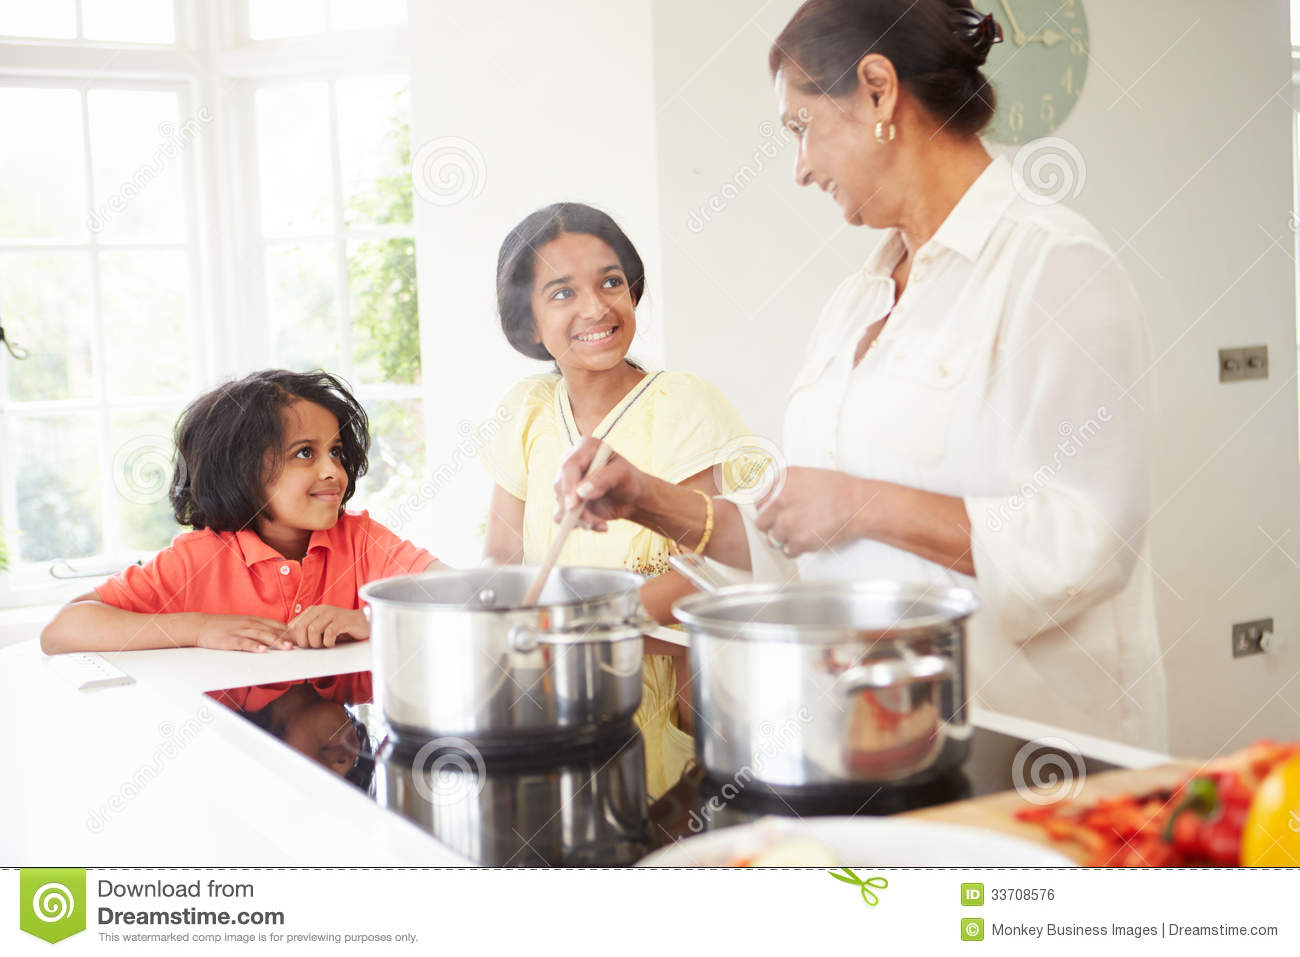 Children Cooking With Grandmother Stock Image - Image of flour ...